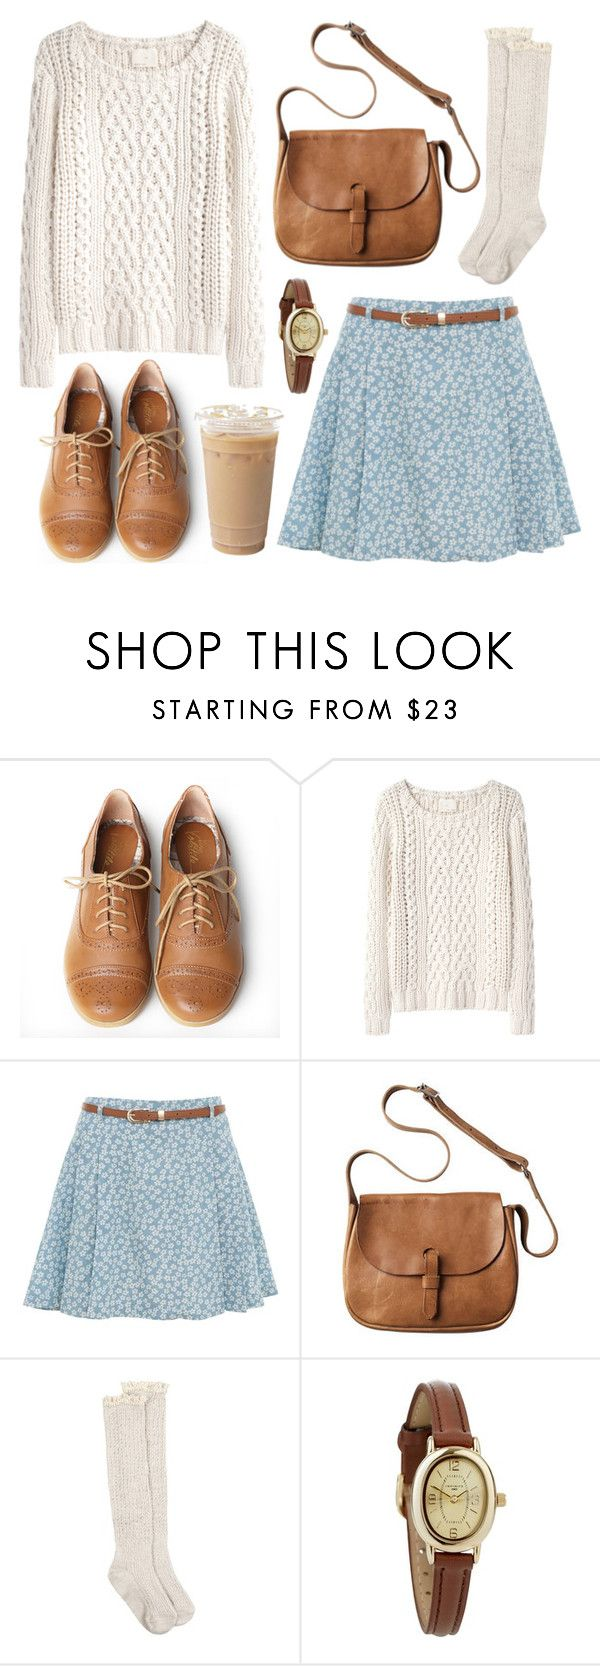 Baby blue & floral by hanaglatison on Polyvore featuring Band of Outsiders, Parisian, AllSaints, Very Volatile, Toast, Infinite, floral, oxford, sweater and shoes